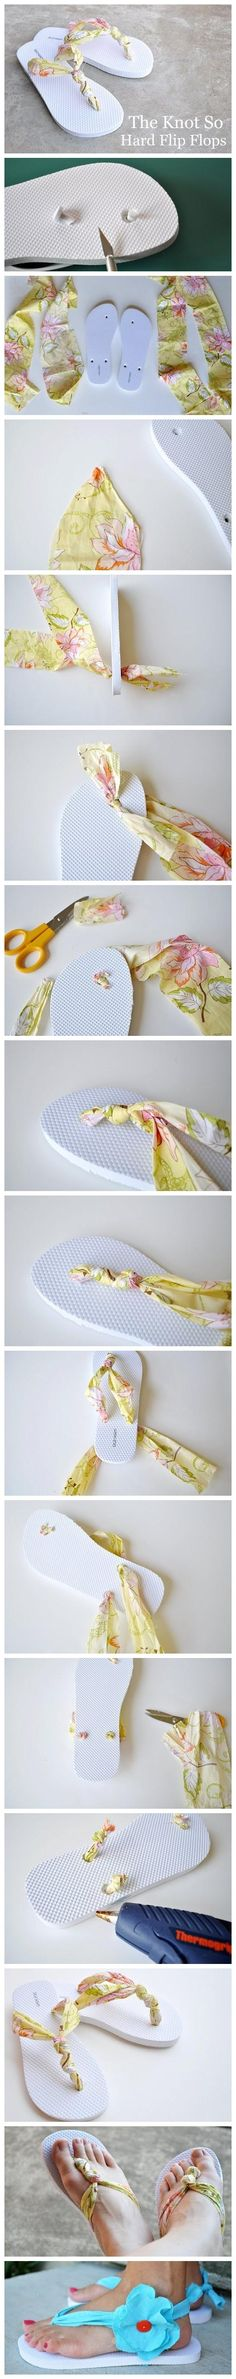 Do this to cheap flip-flops to make them more comfortable...